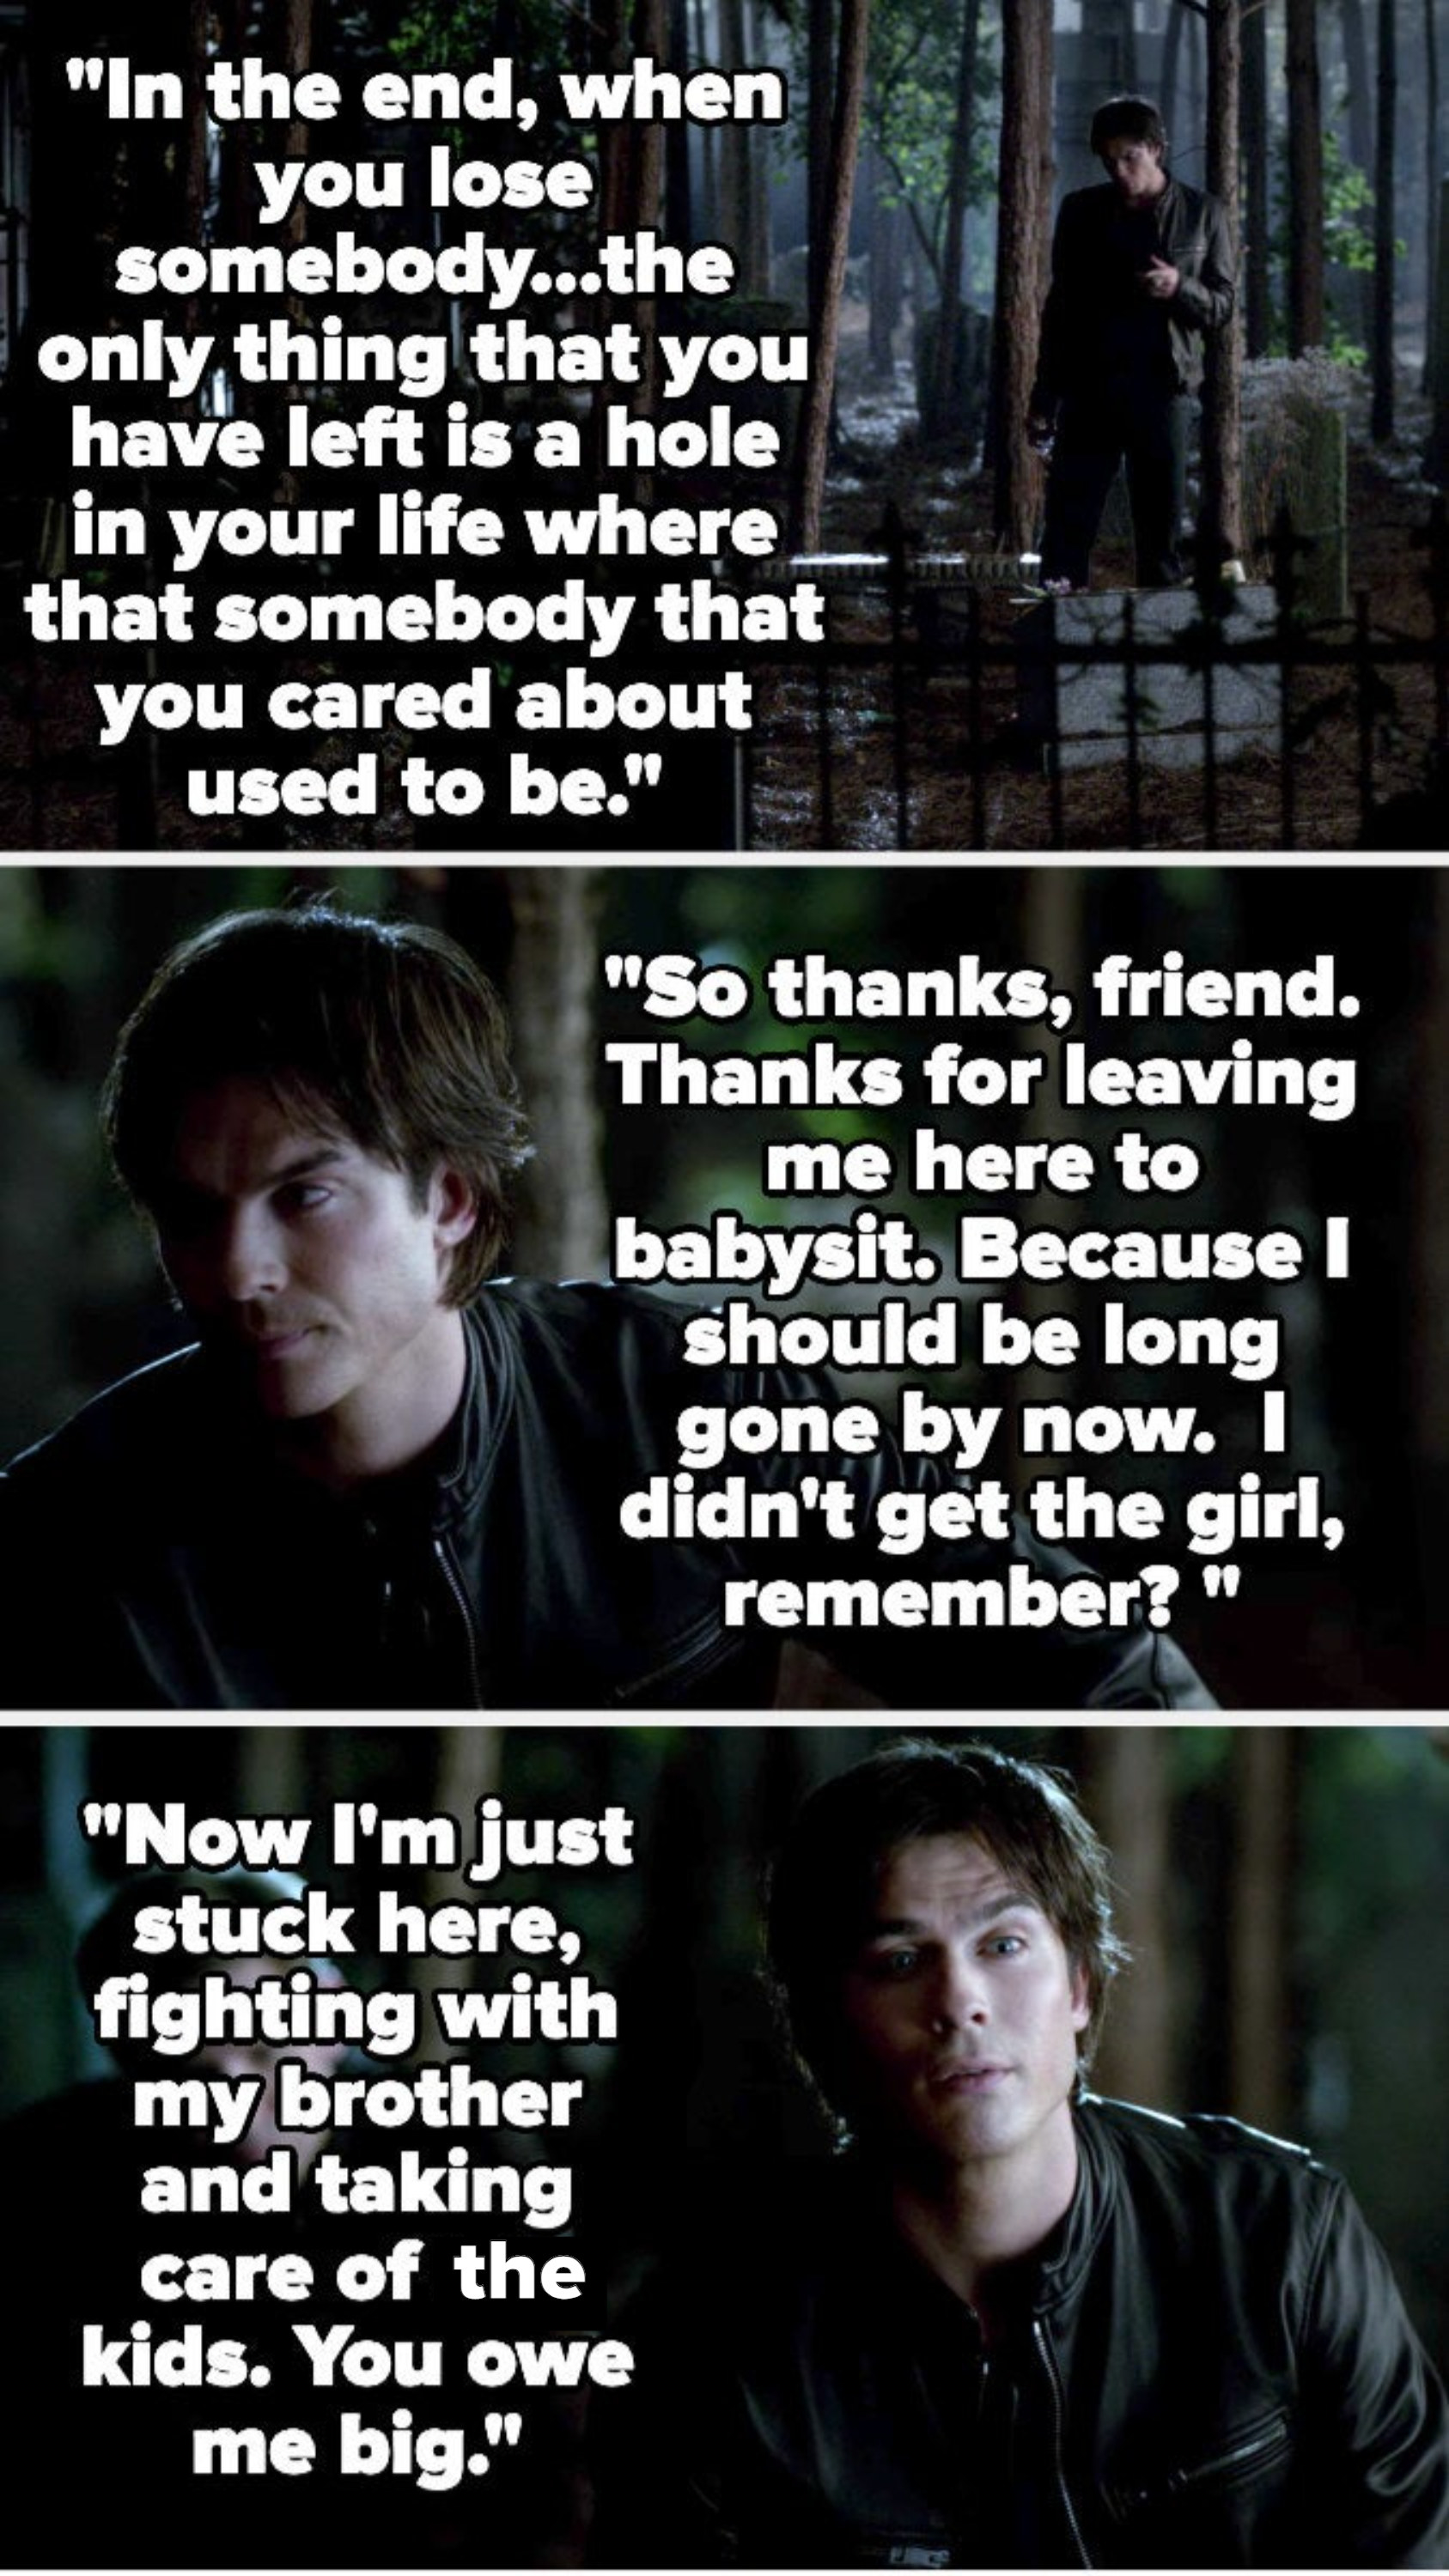 Damon says when you lose somebody there's just a hole where they used to be, and that he should be long gone since Elena didn't choose him, but he has to stay to take care of his brother and the others